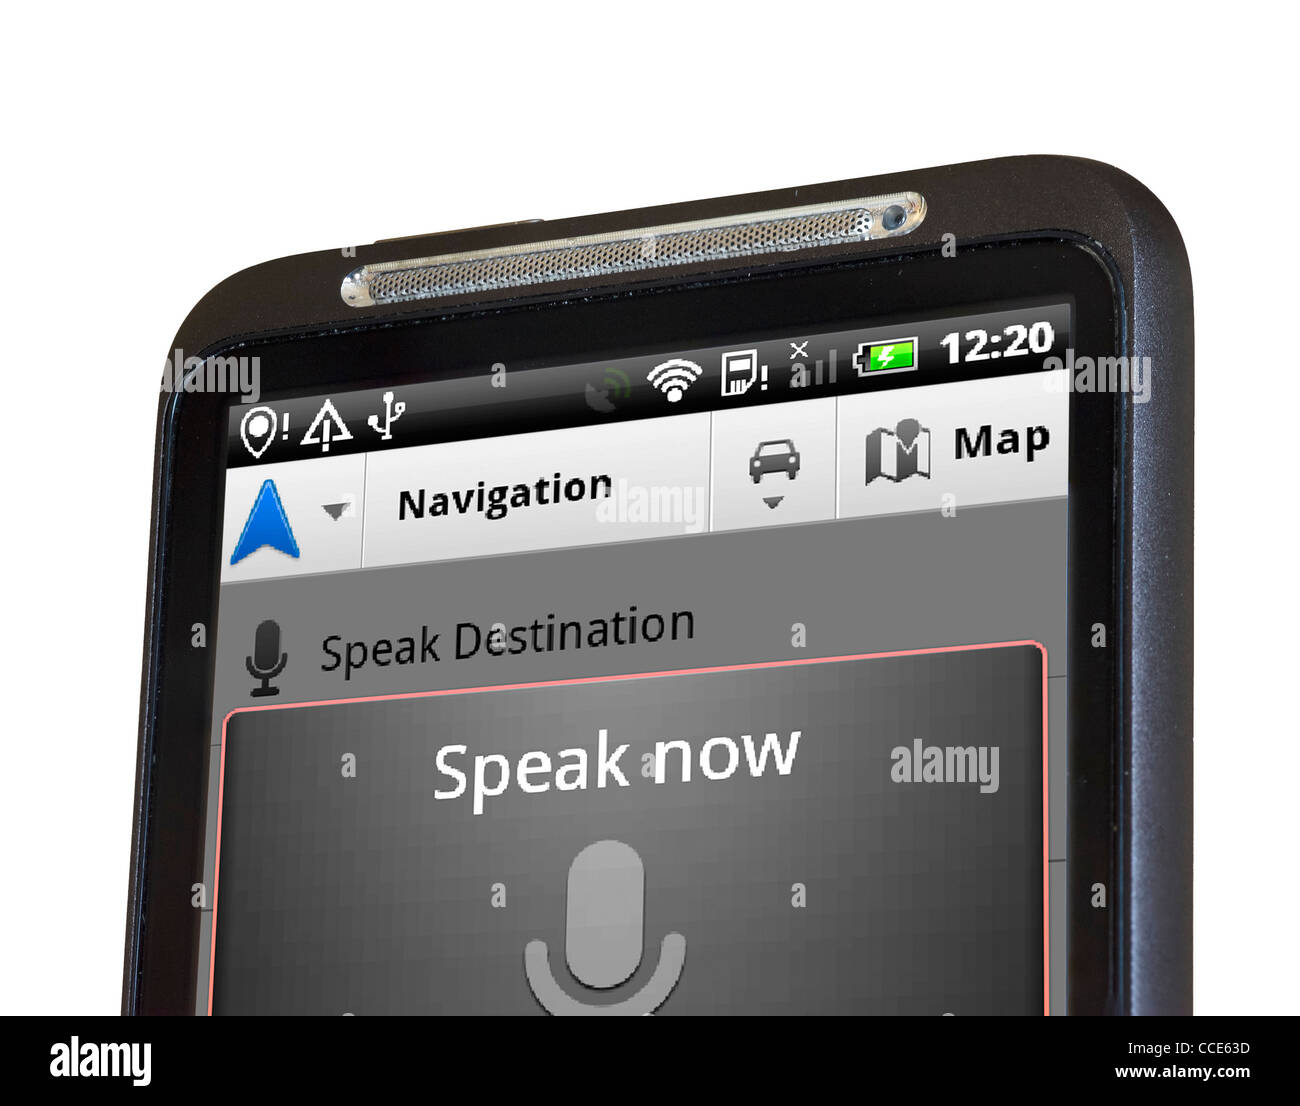 Voice recognition on Google Maps Navigation with an HTC smartphone - Stock Image